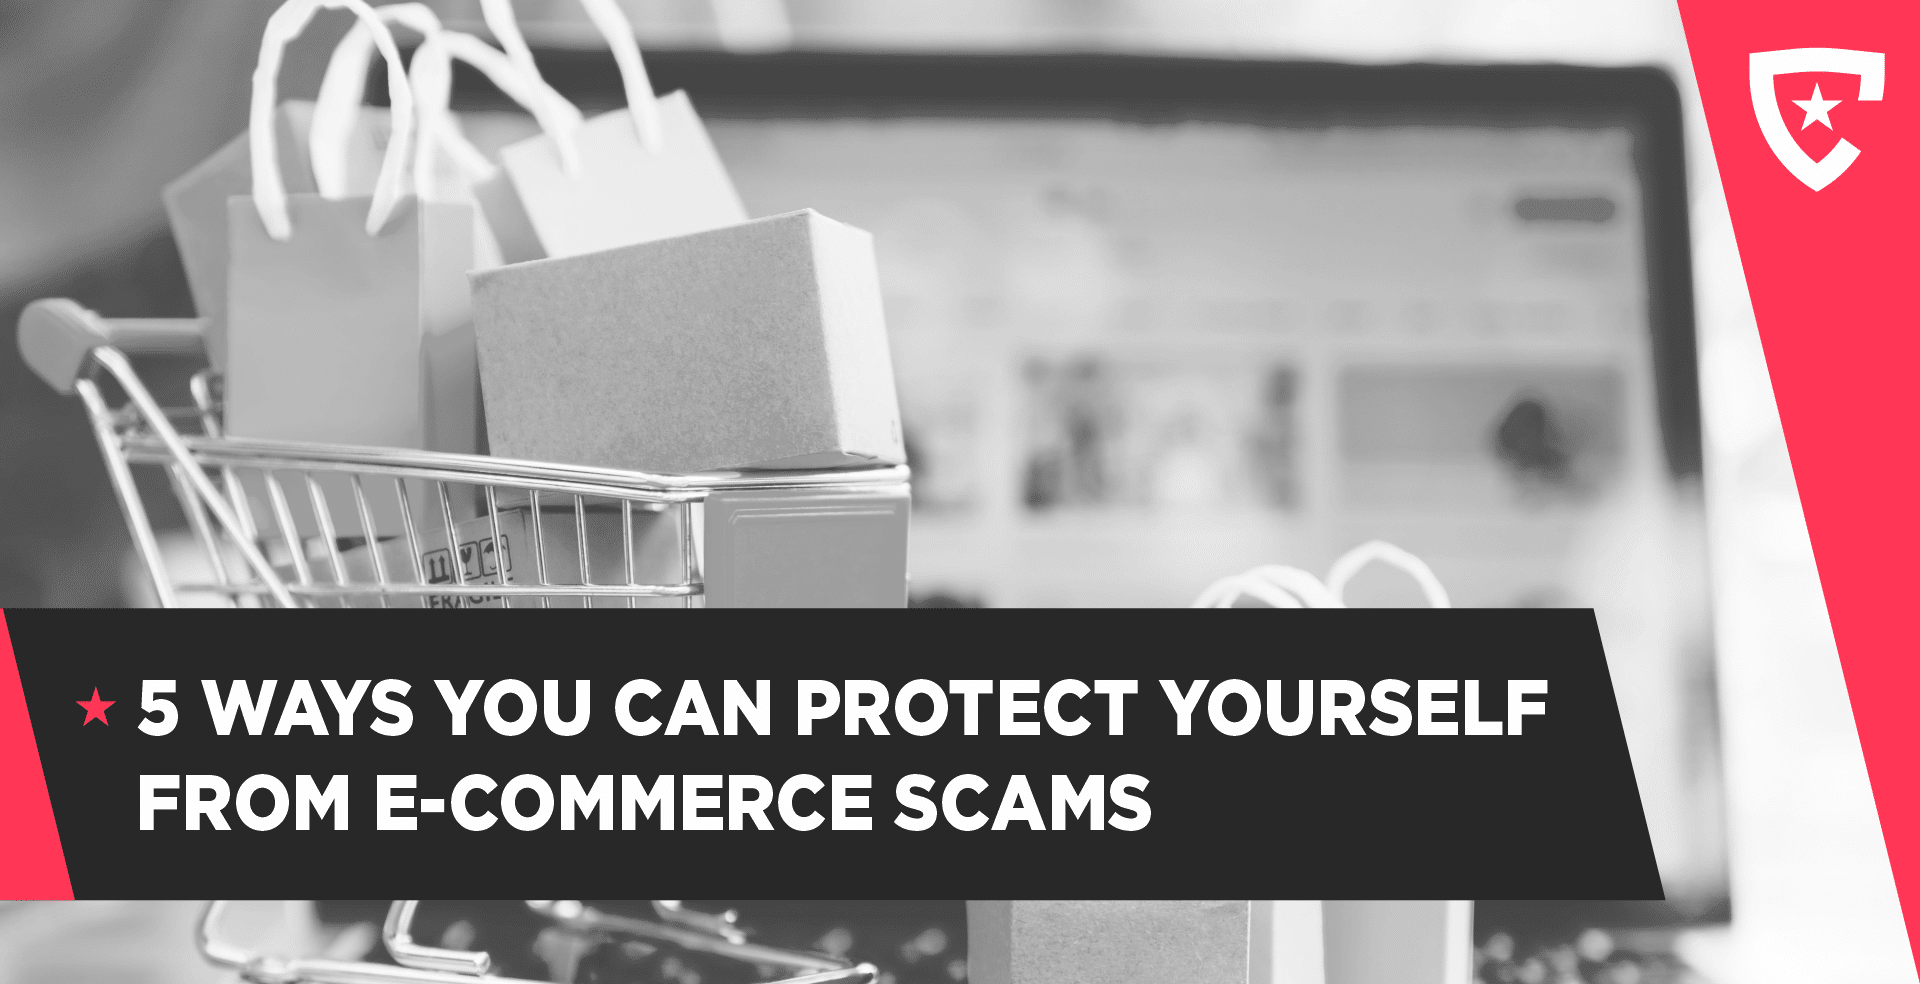 5 Ways You Can Protect Yourself From E-Commerce Scams